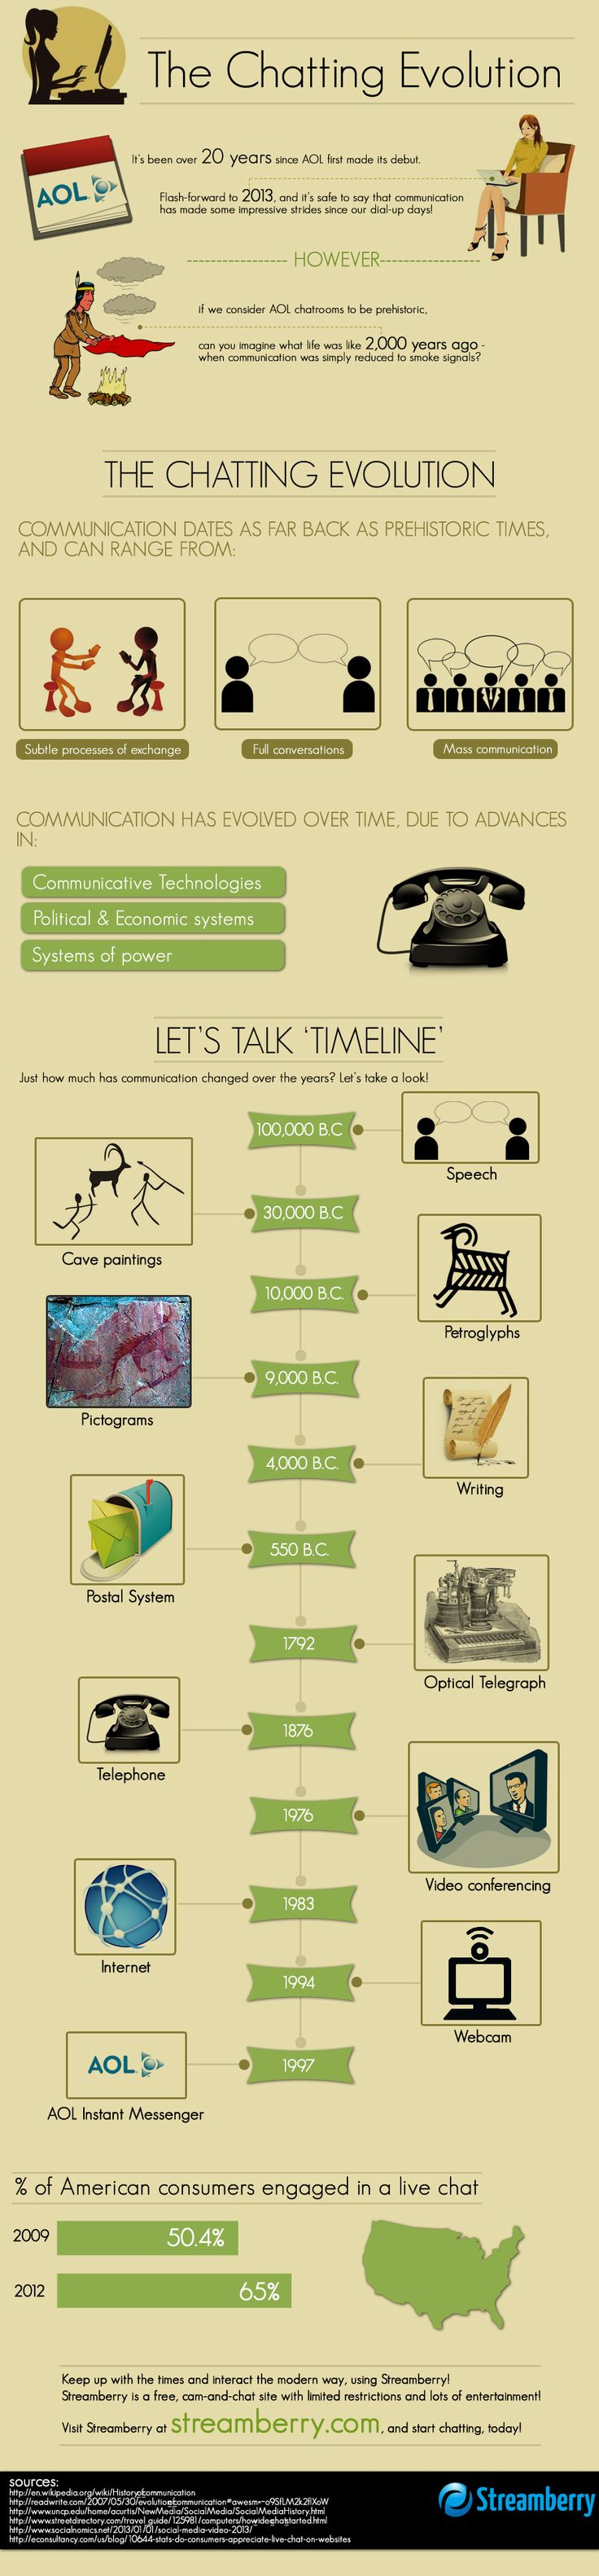 The Chatting Evolution - Smokes to AOL chat,evolution,infographic